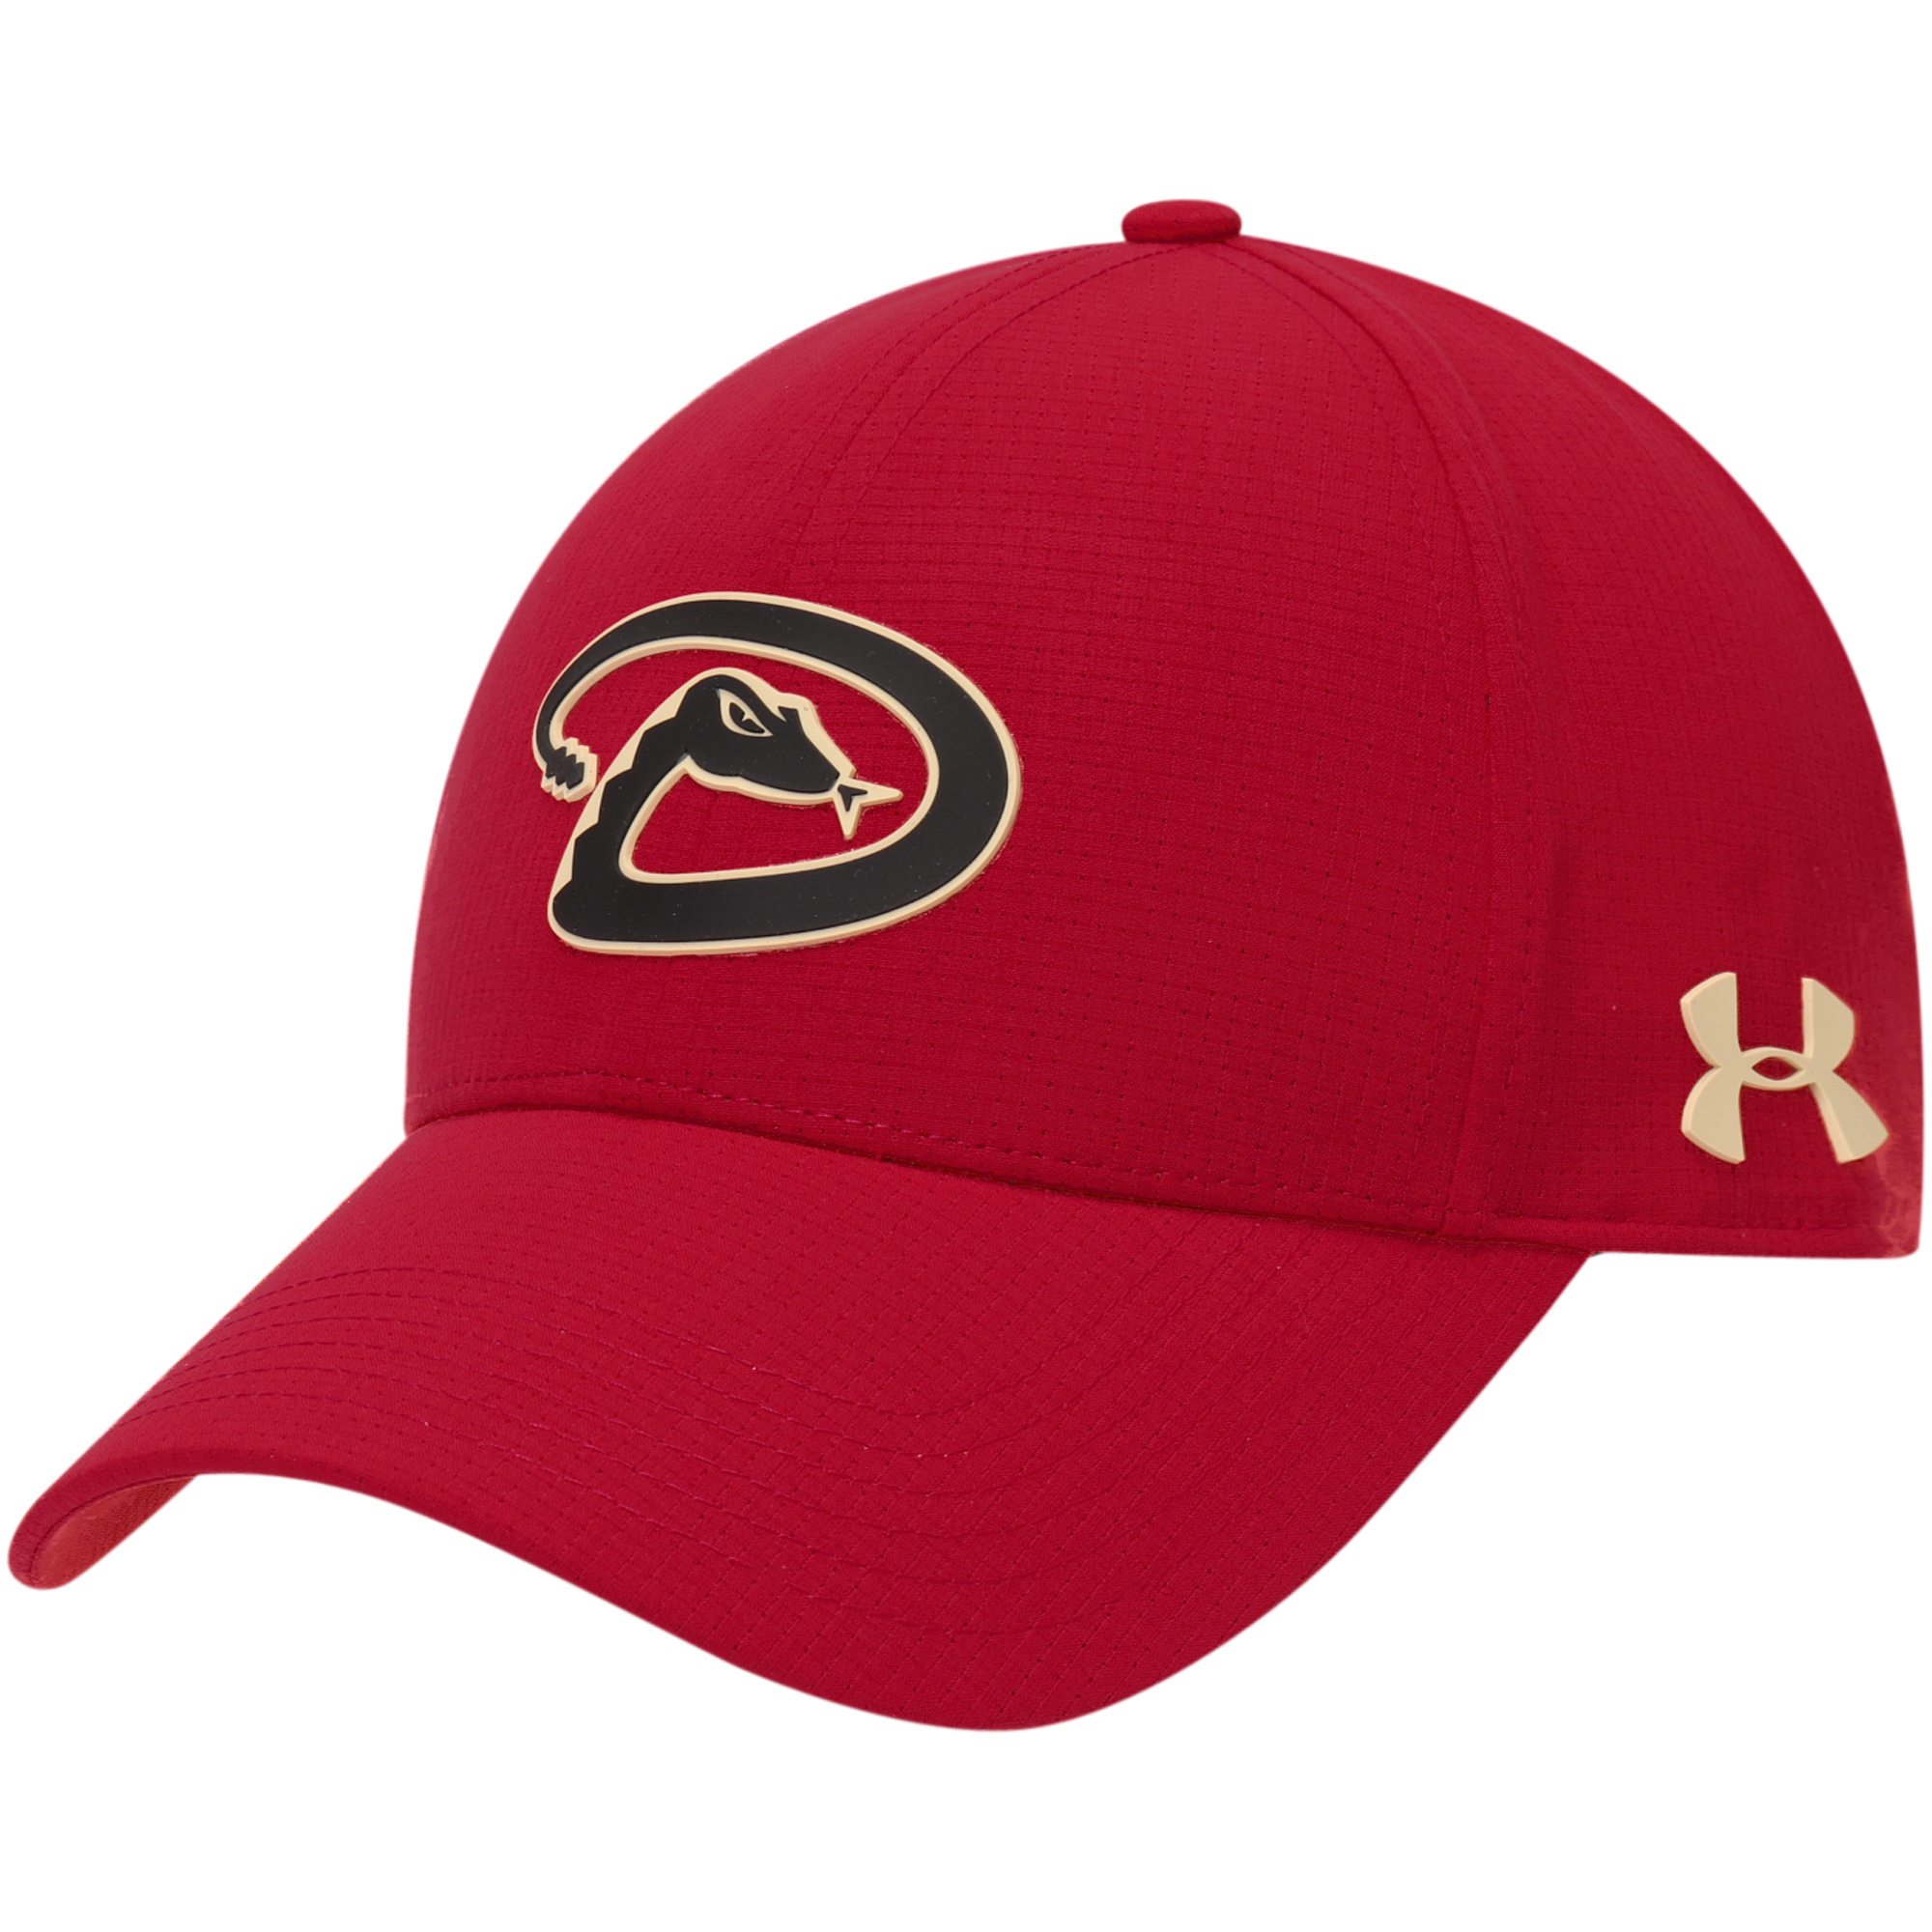 Arizona Diamondbacks Under Armour MLB Driver Cap 2.0 Adjustable Hat - Red - OSFA